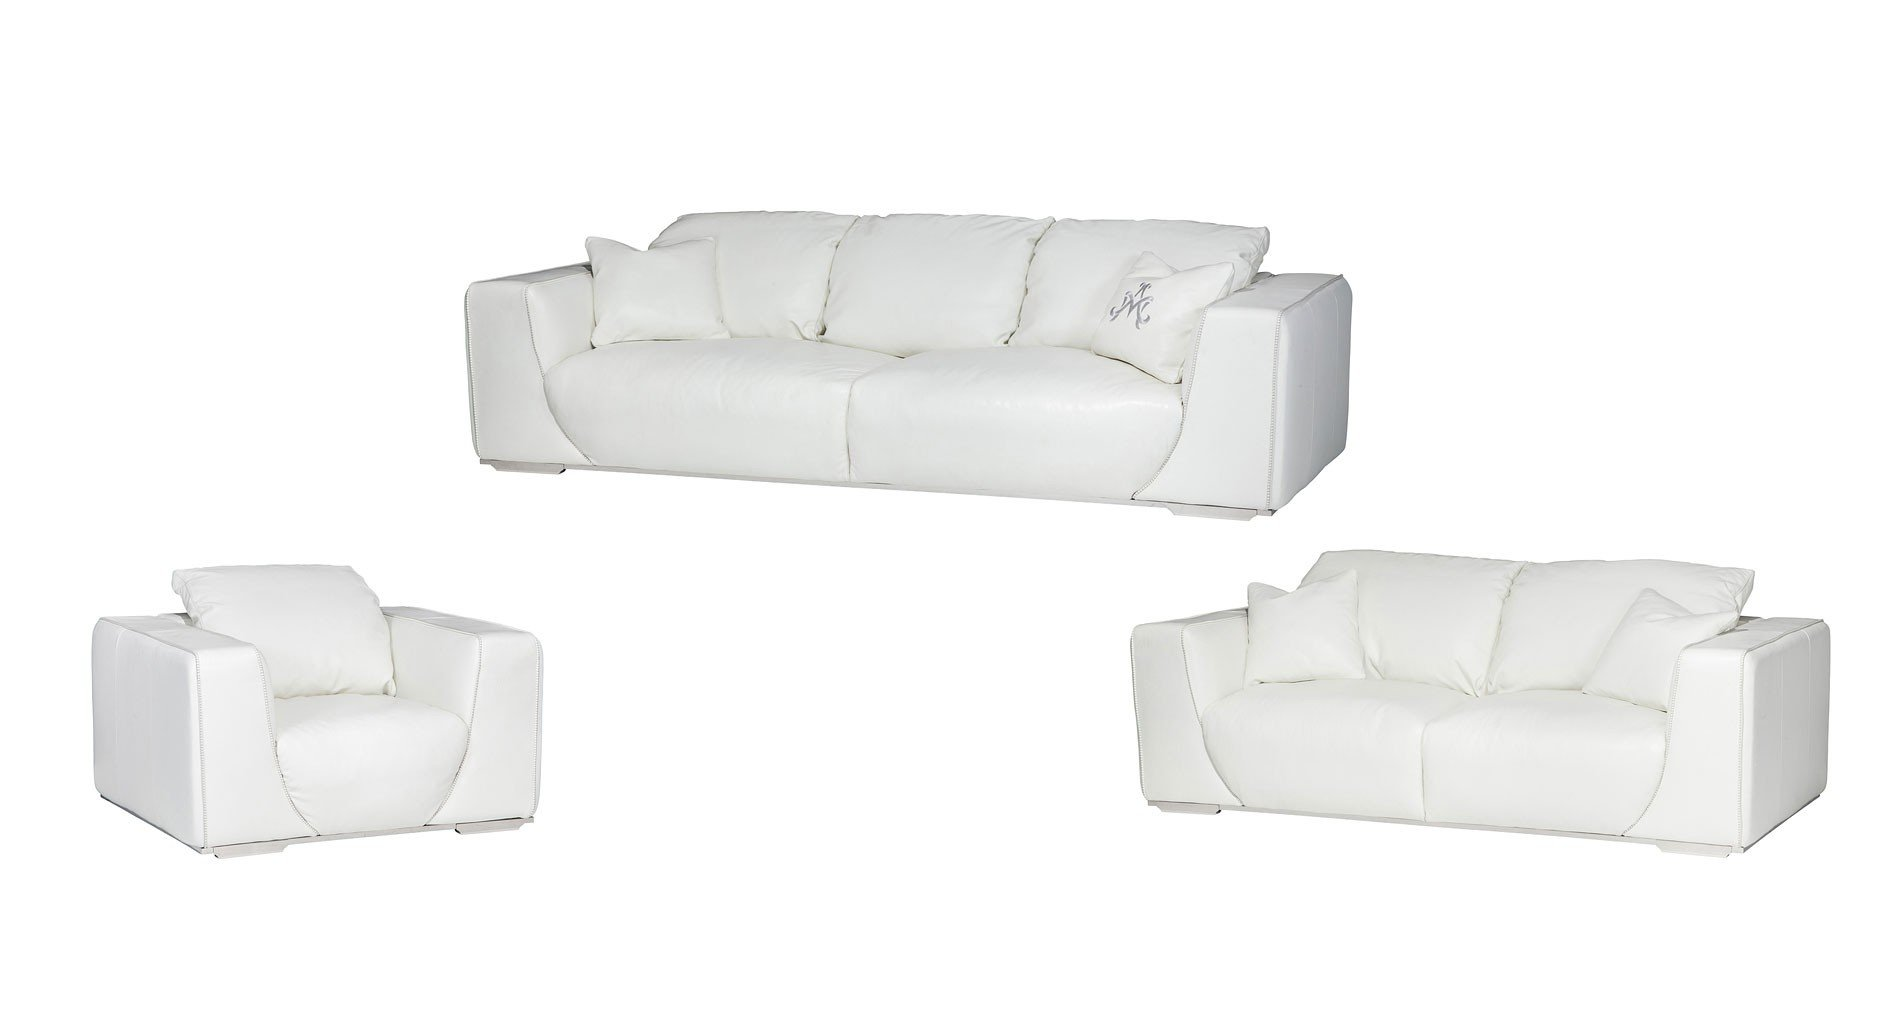 Mia Bella Sophia Leather Living Room Set (White)